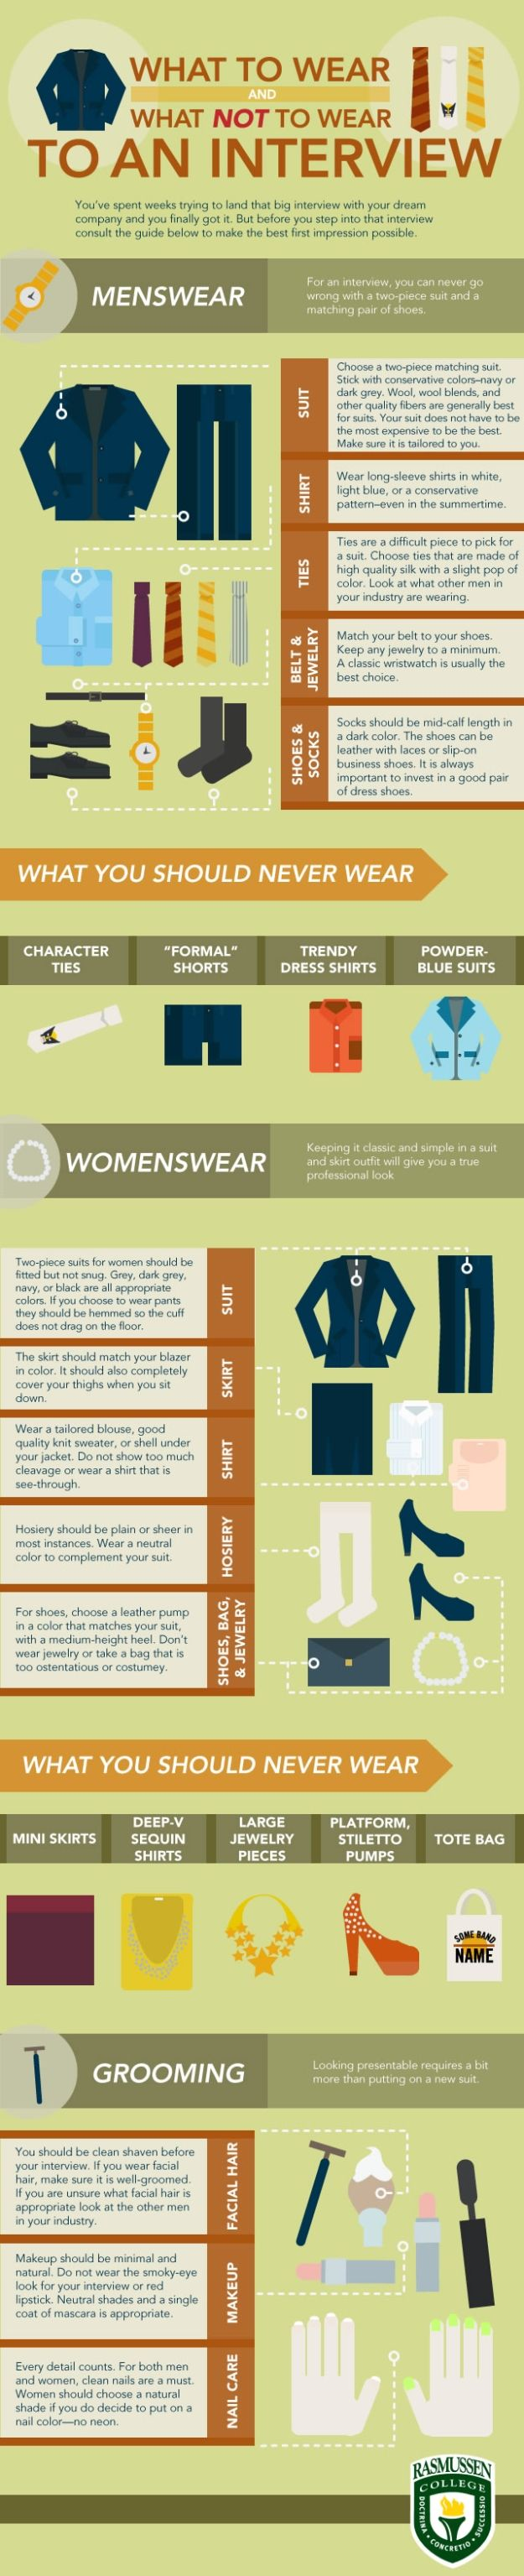 best images about job search tips summer jobs interview attire